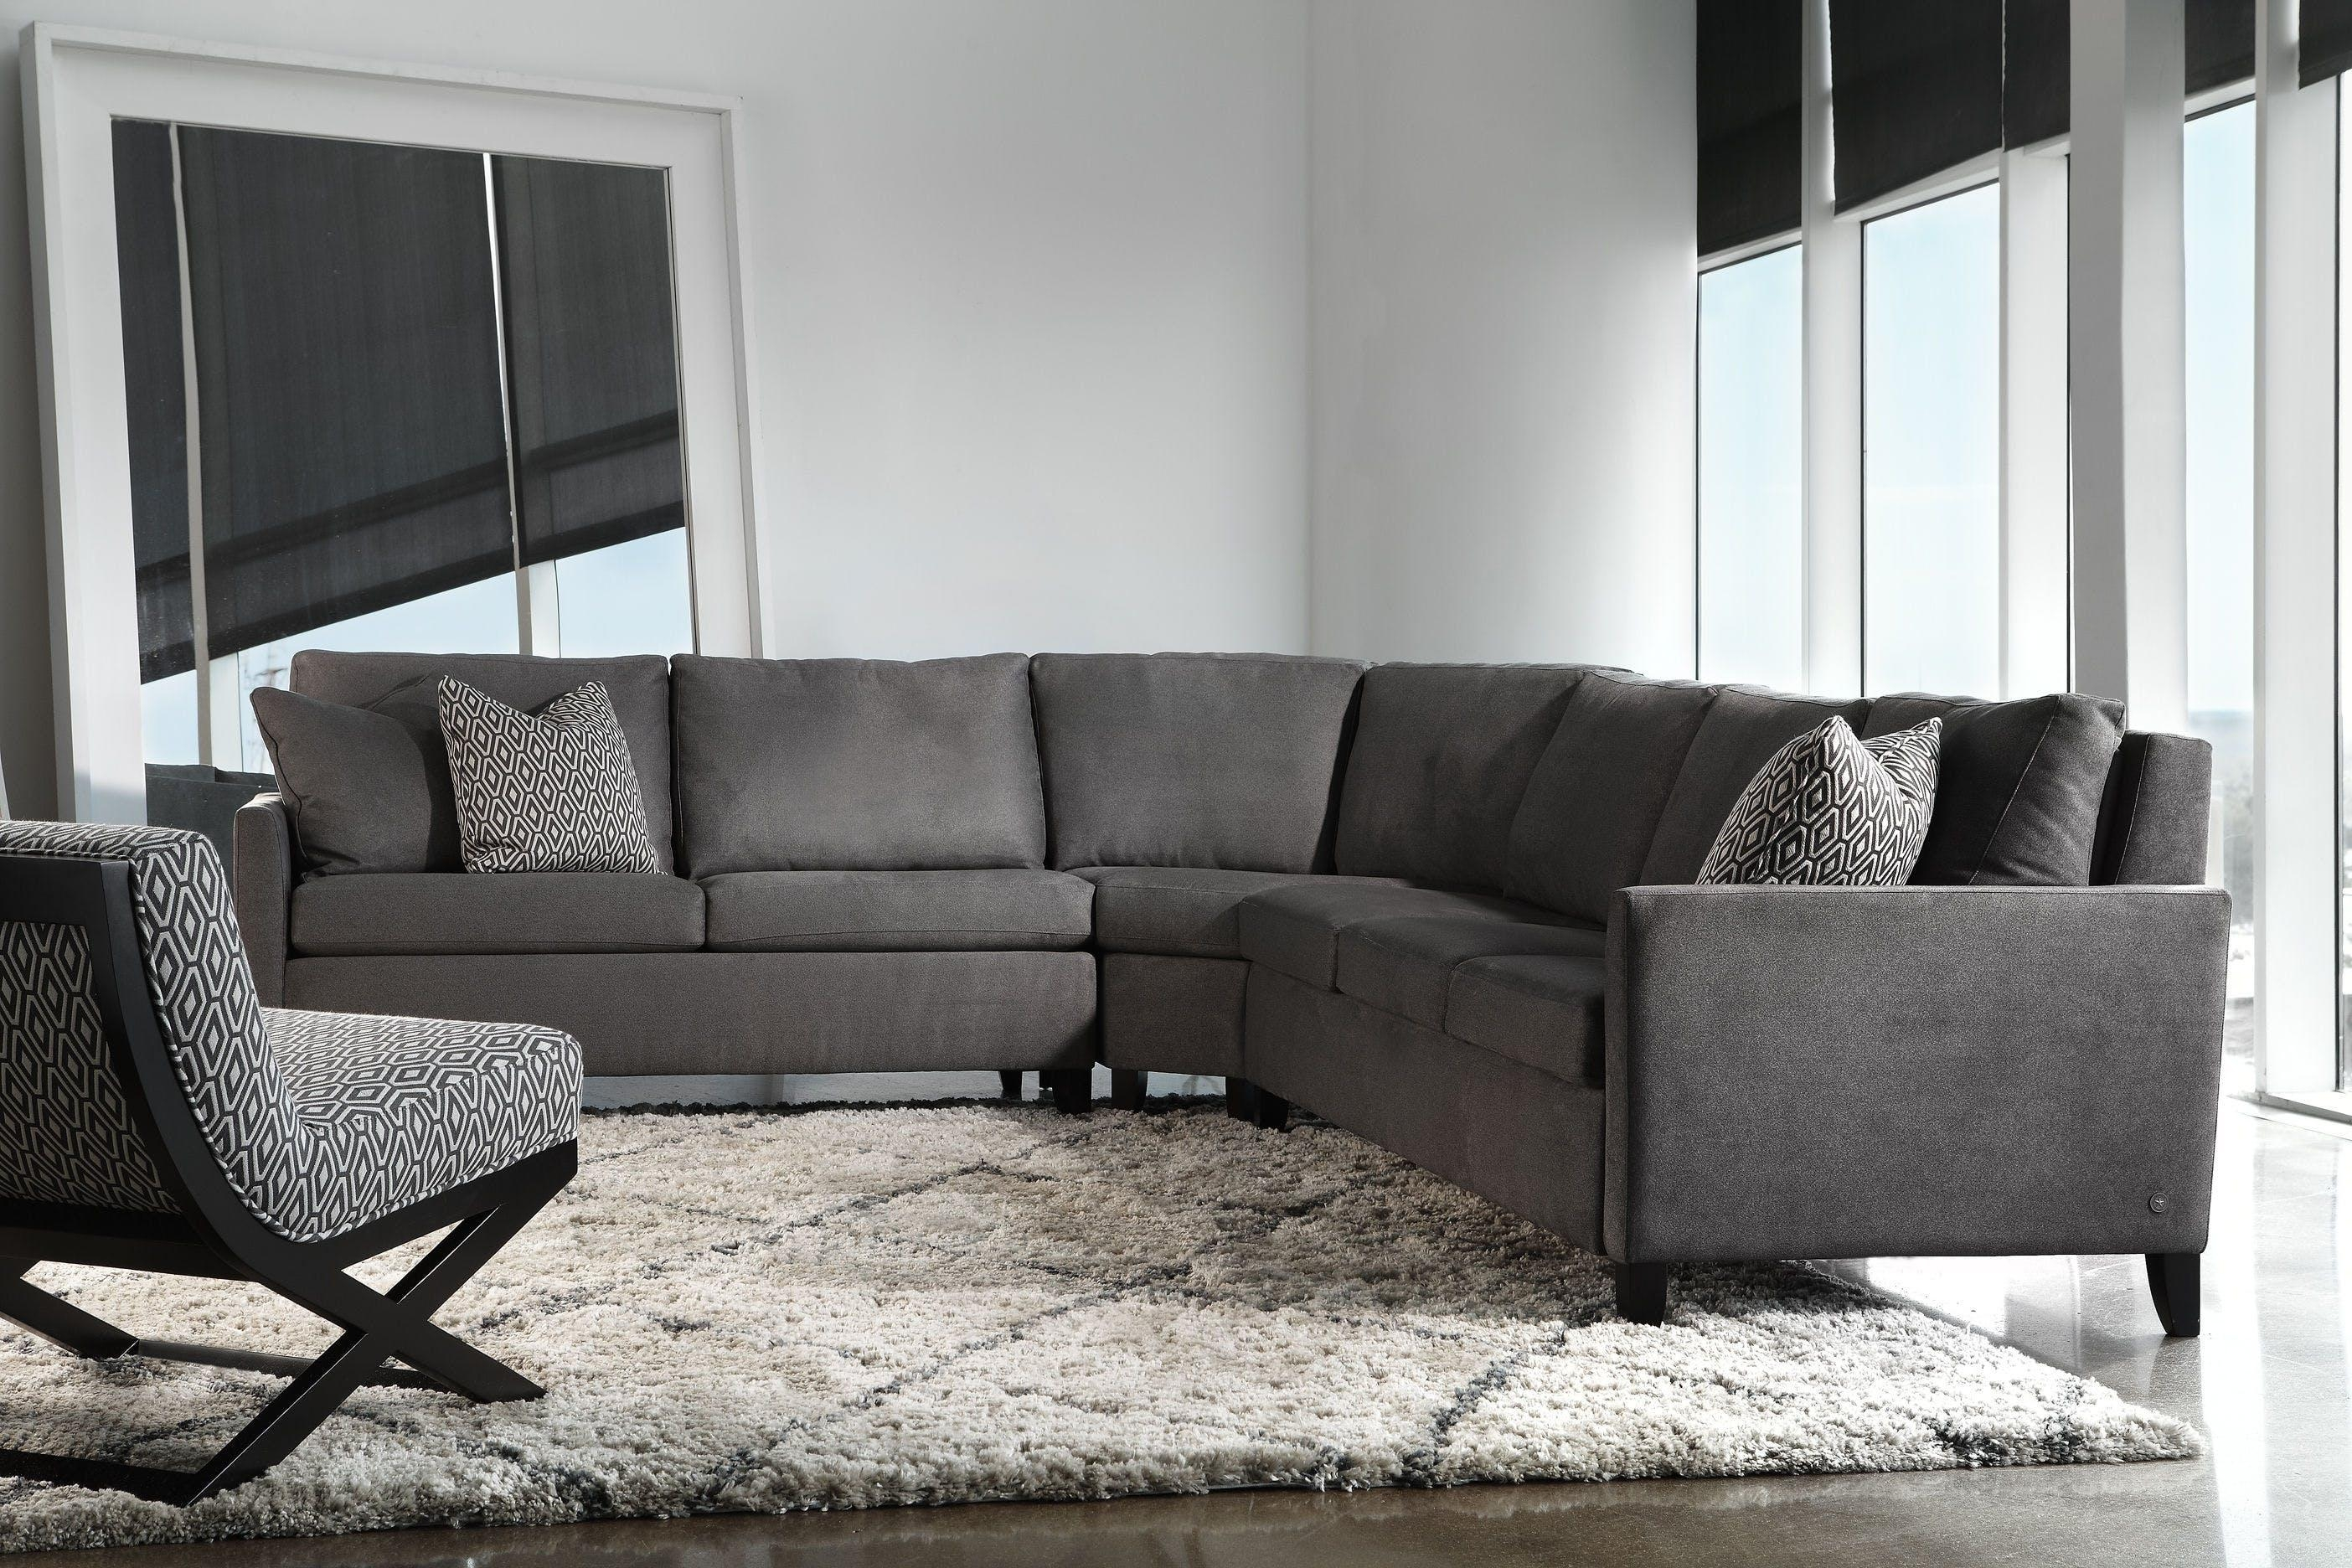 Furniture: Mesmerizing Costco Sectionals Sofa For Cozy Living Room For Berkline Sectional Sofa (View 2 of 15)